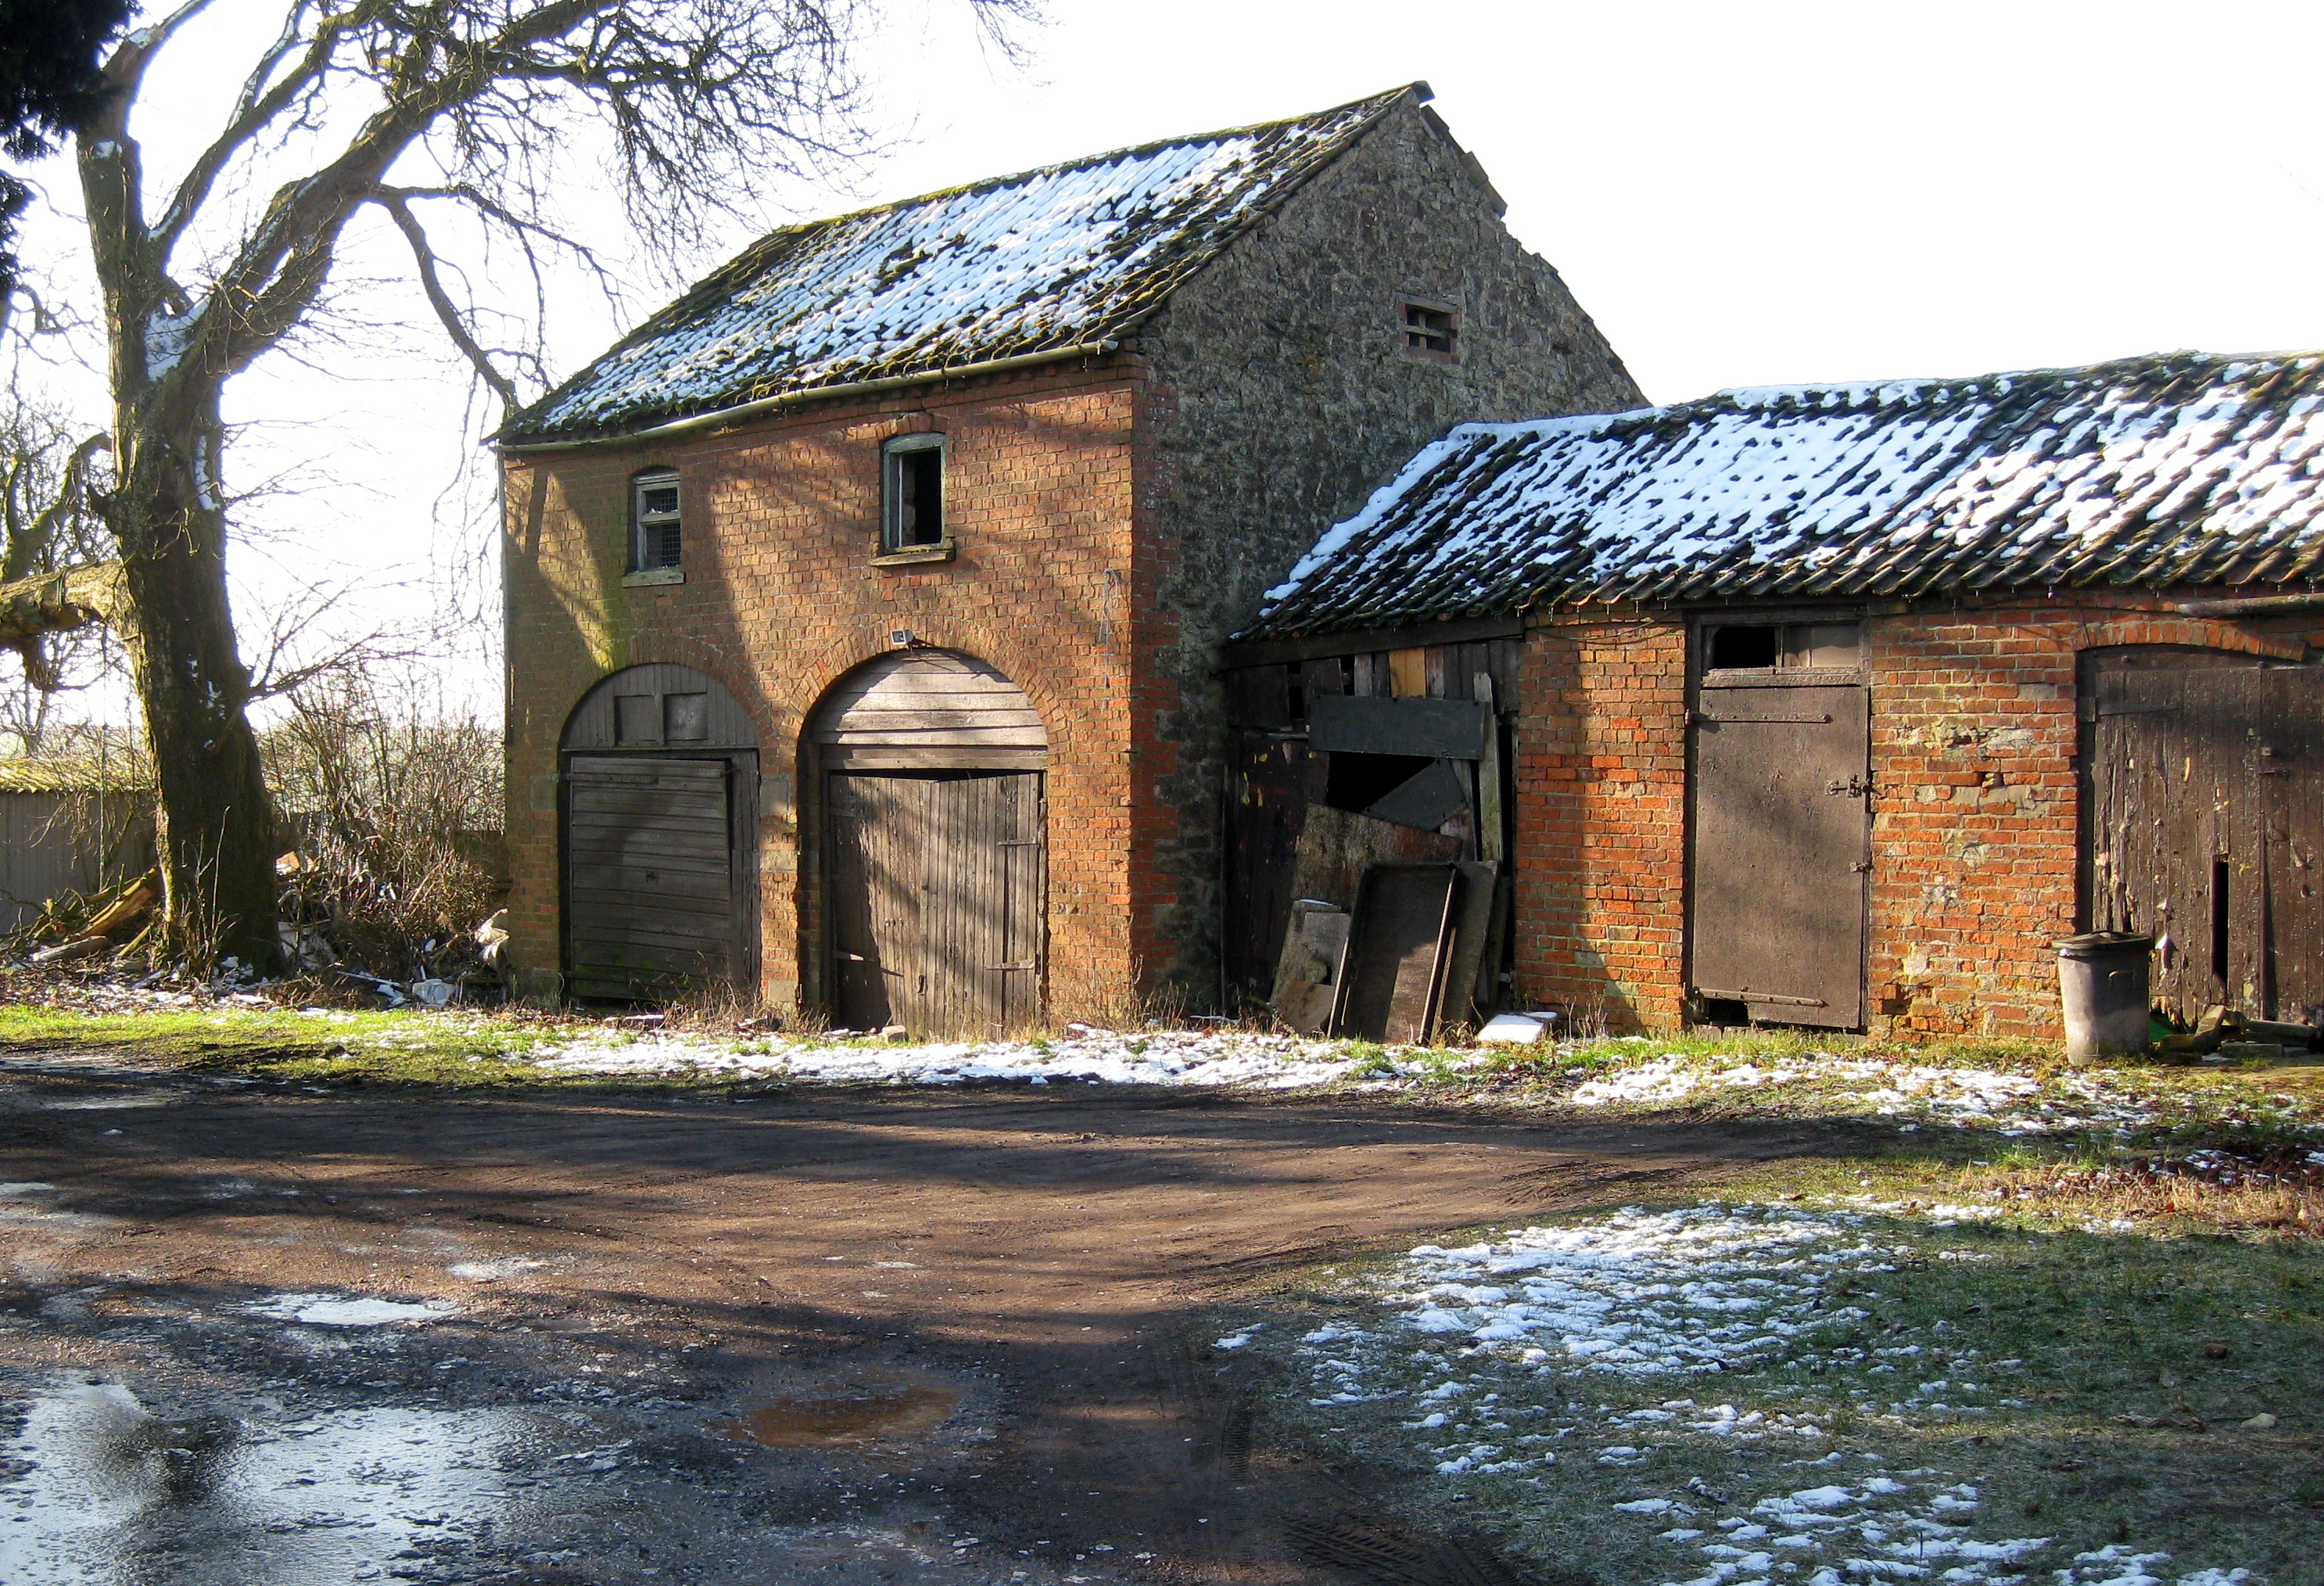 File:Old farm building - geograph.org.uk - 1723087.jpg - Wikimedia ...